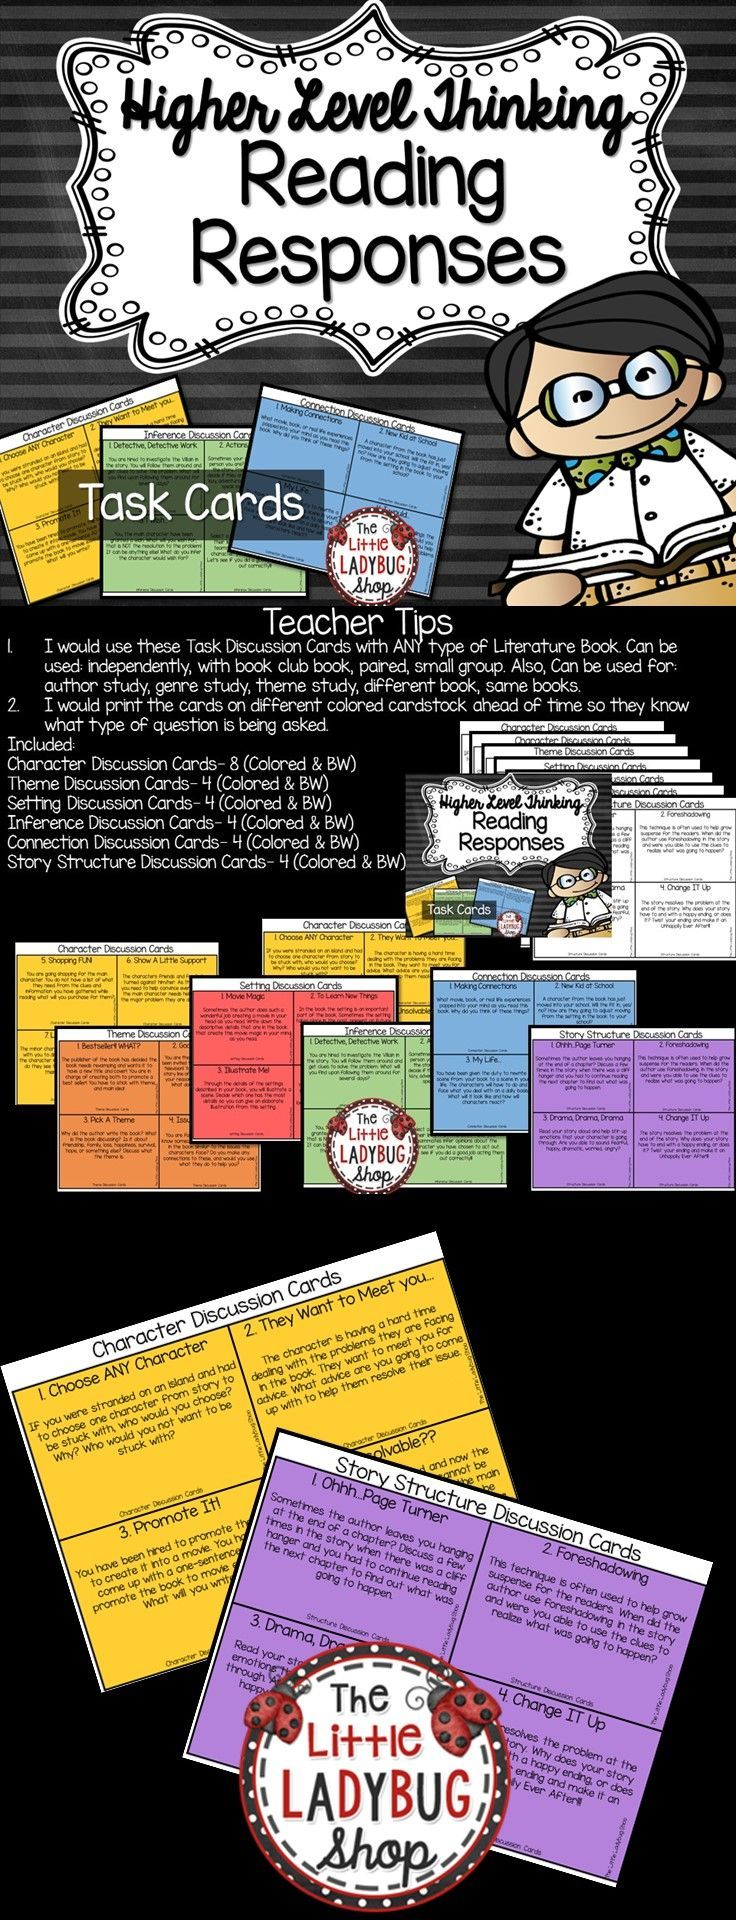 Reading Response | Reading Response | Reading Response Reading Response Higher Level Thinking for ANY- book club, literature/ novel. Your students will LOVE these interactive and HOT task card activities! More